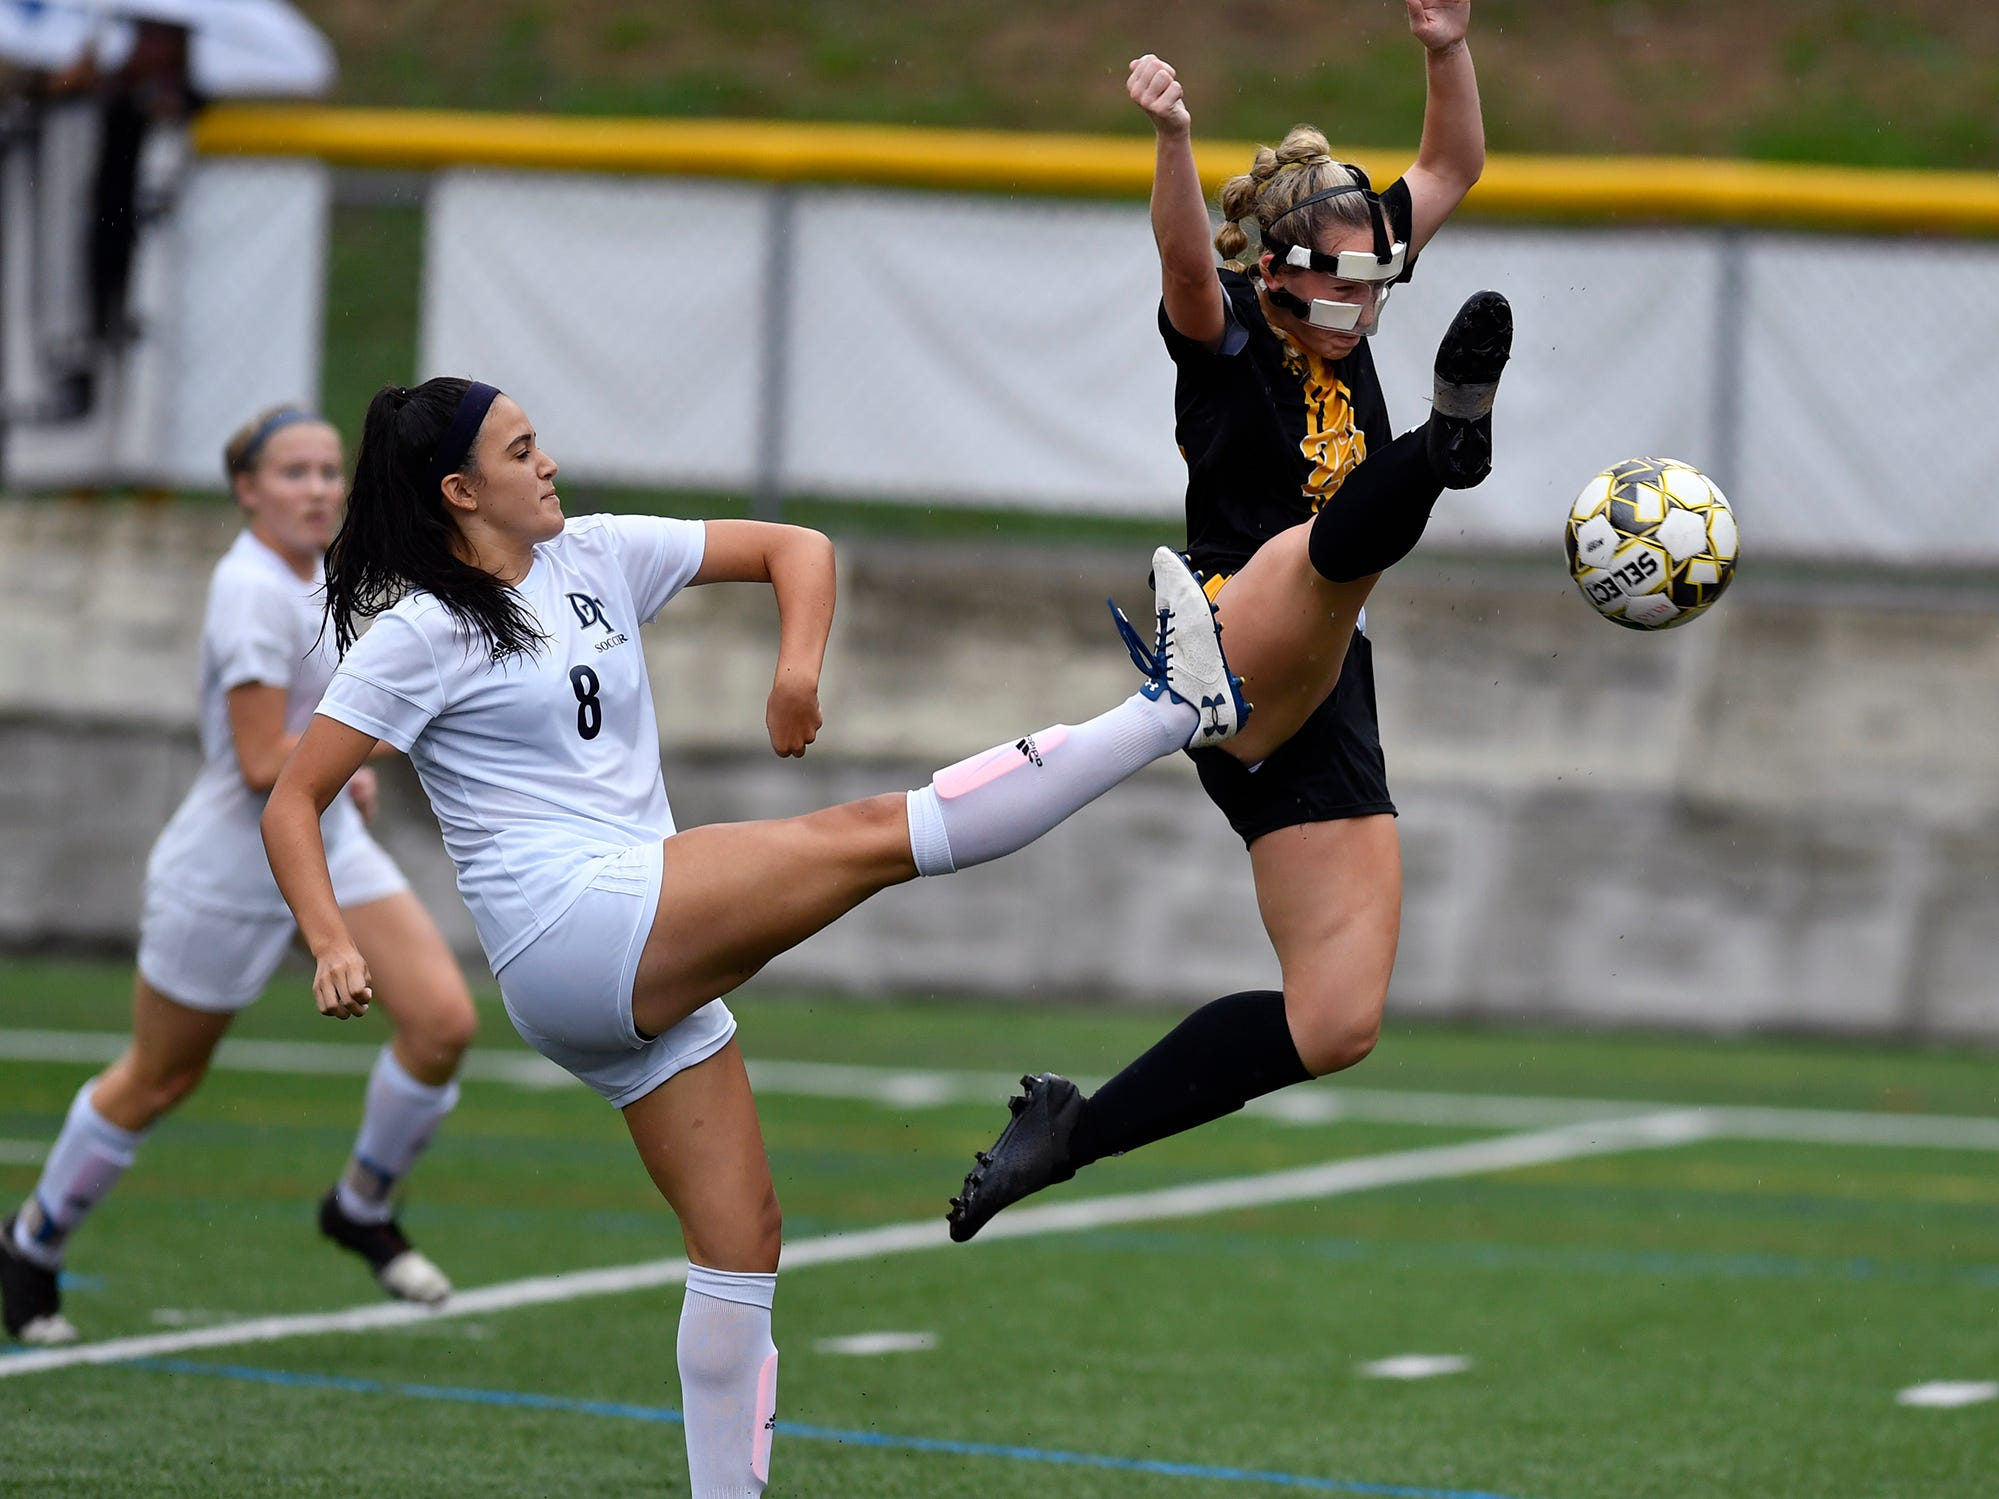 Red Lion's Gabby Young makes a leaping attempt to kick the ball away from Madelyn Rodriguez of Dallastown and into the goal, Thursday, Oct. 11, 2018. 